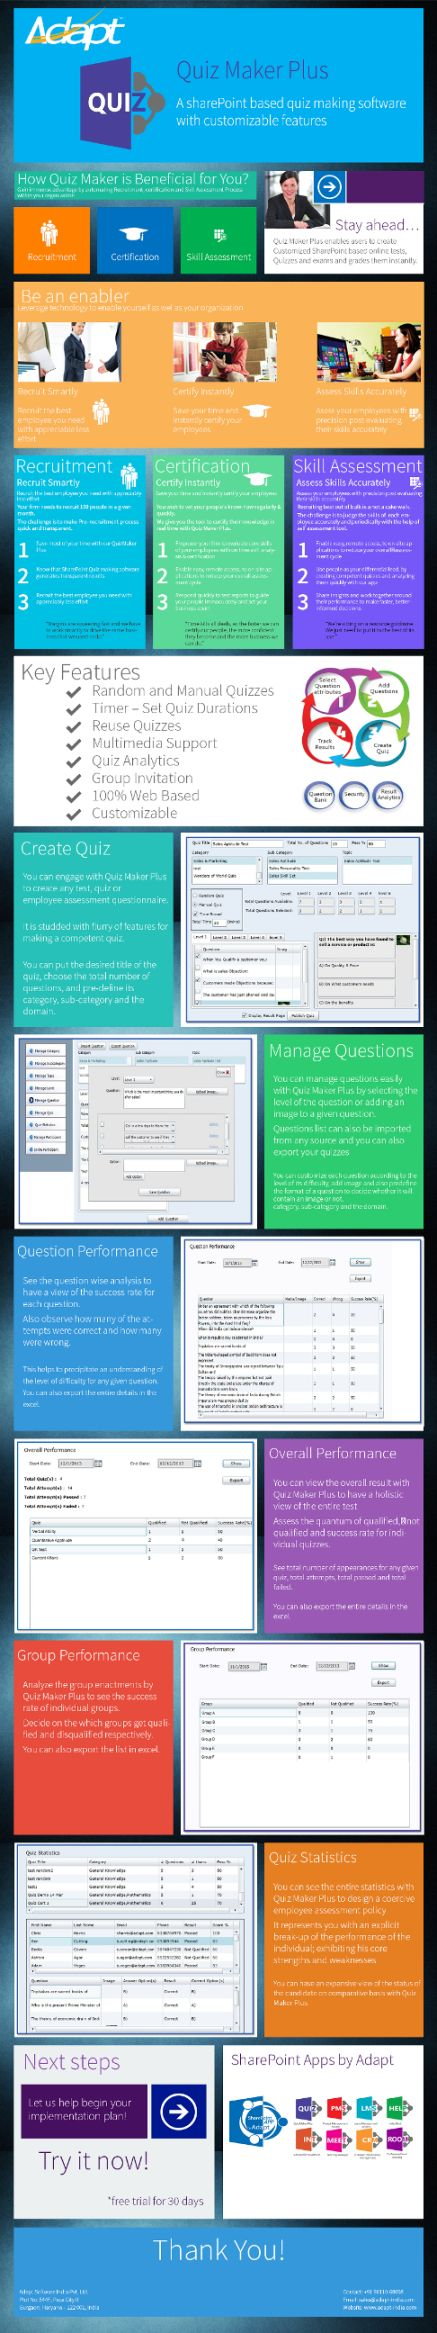 25+ best ideas about Questionnaire maker on Pinterest | Birthday ...